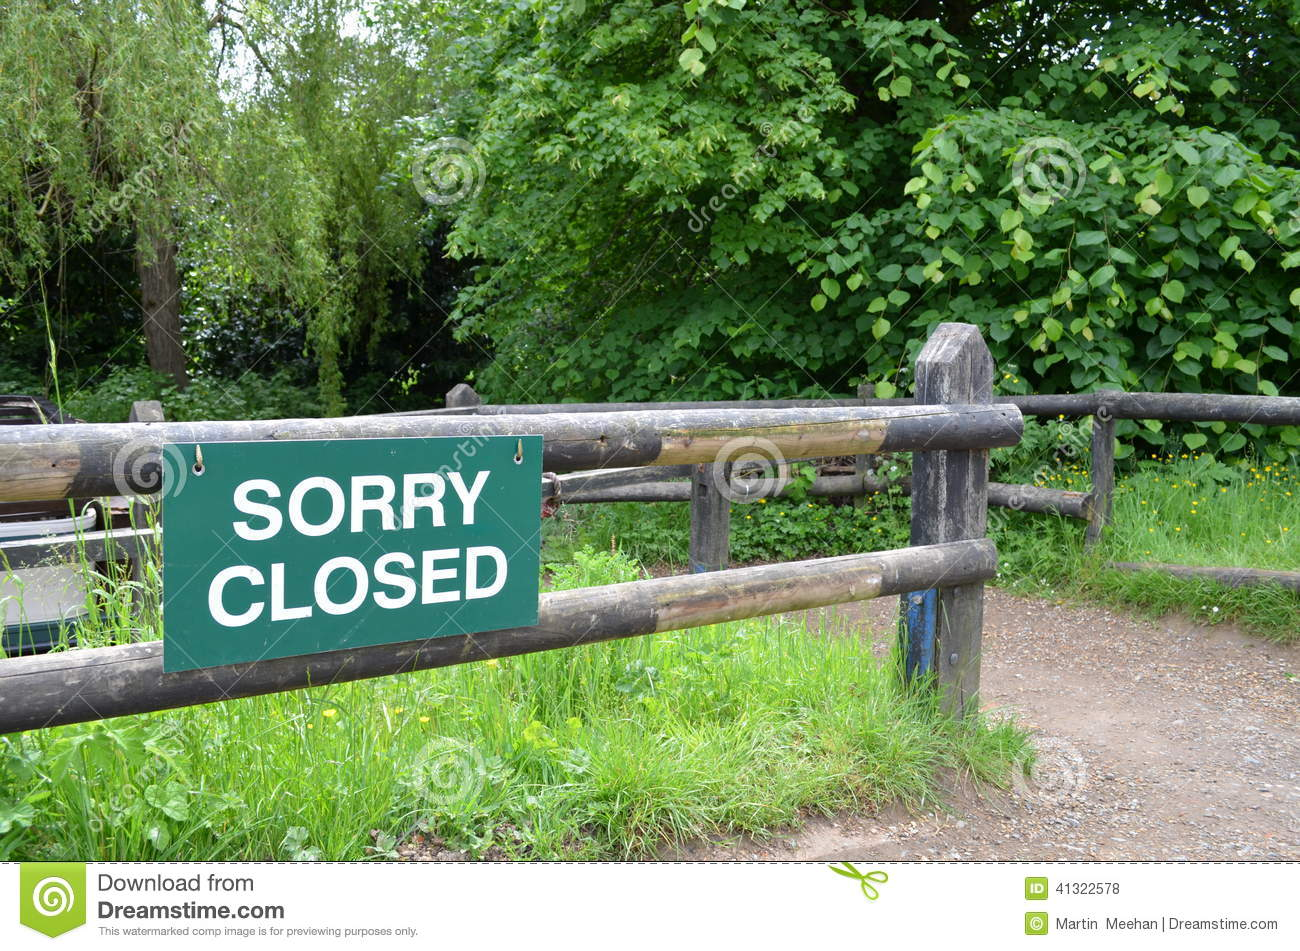 Sorry closed sign.